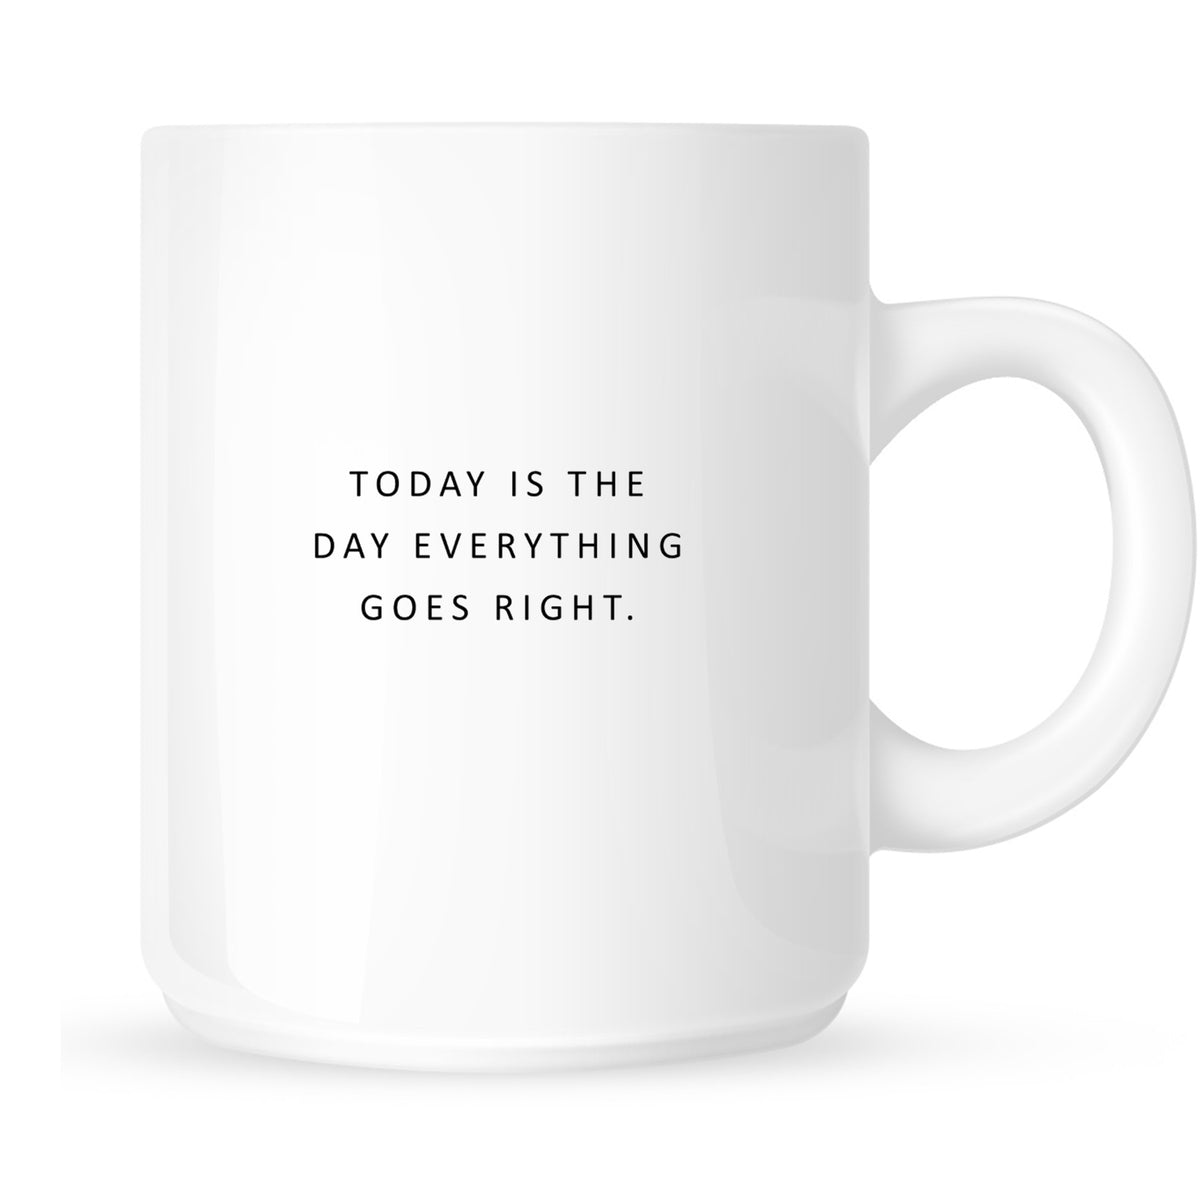 Mug - Today Is the Day Everything Goes Right